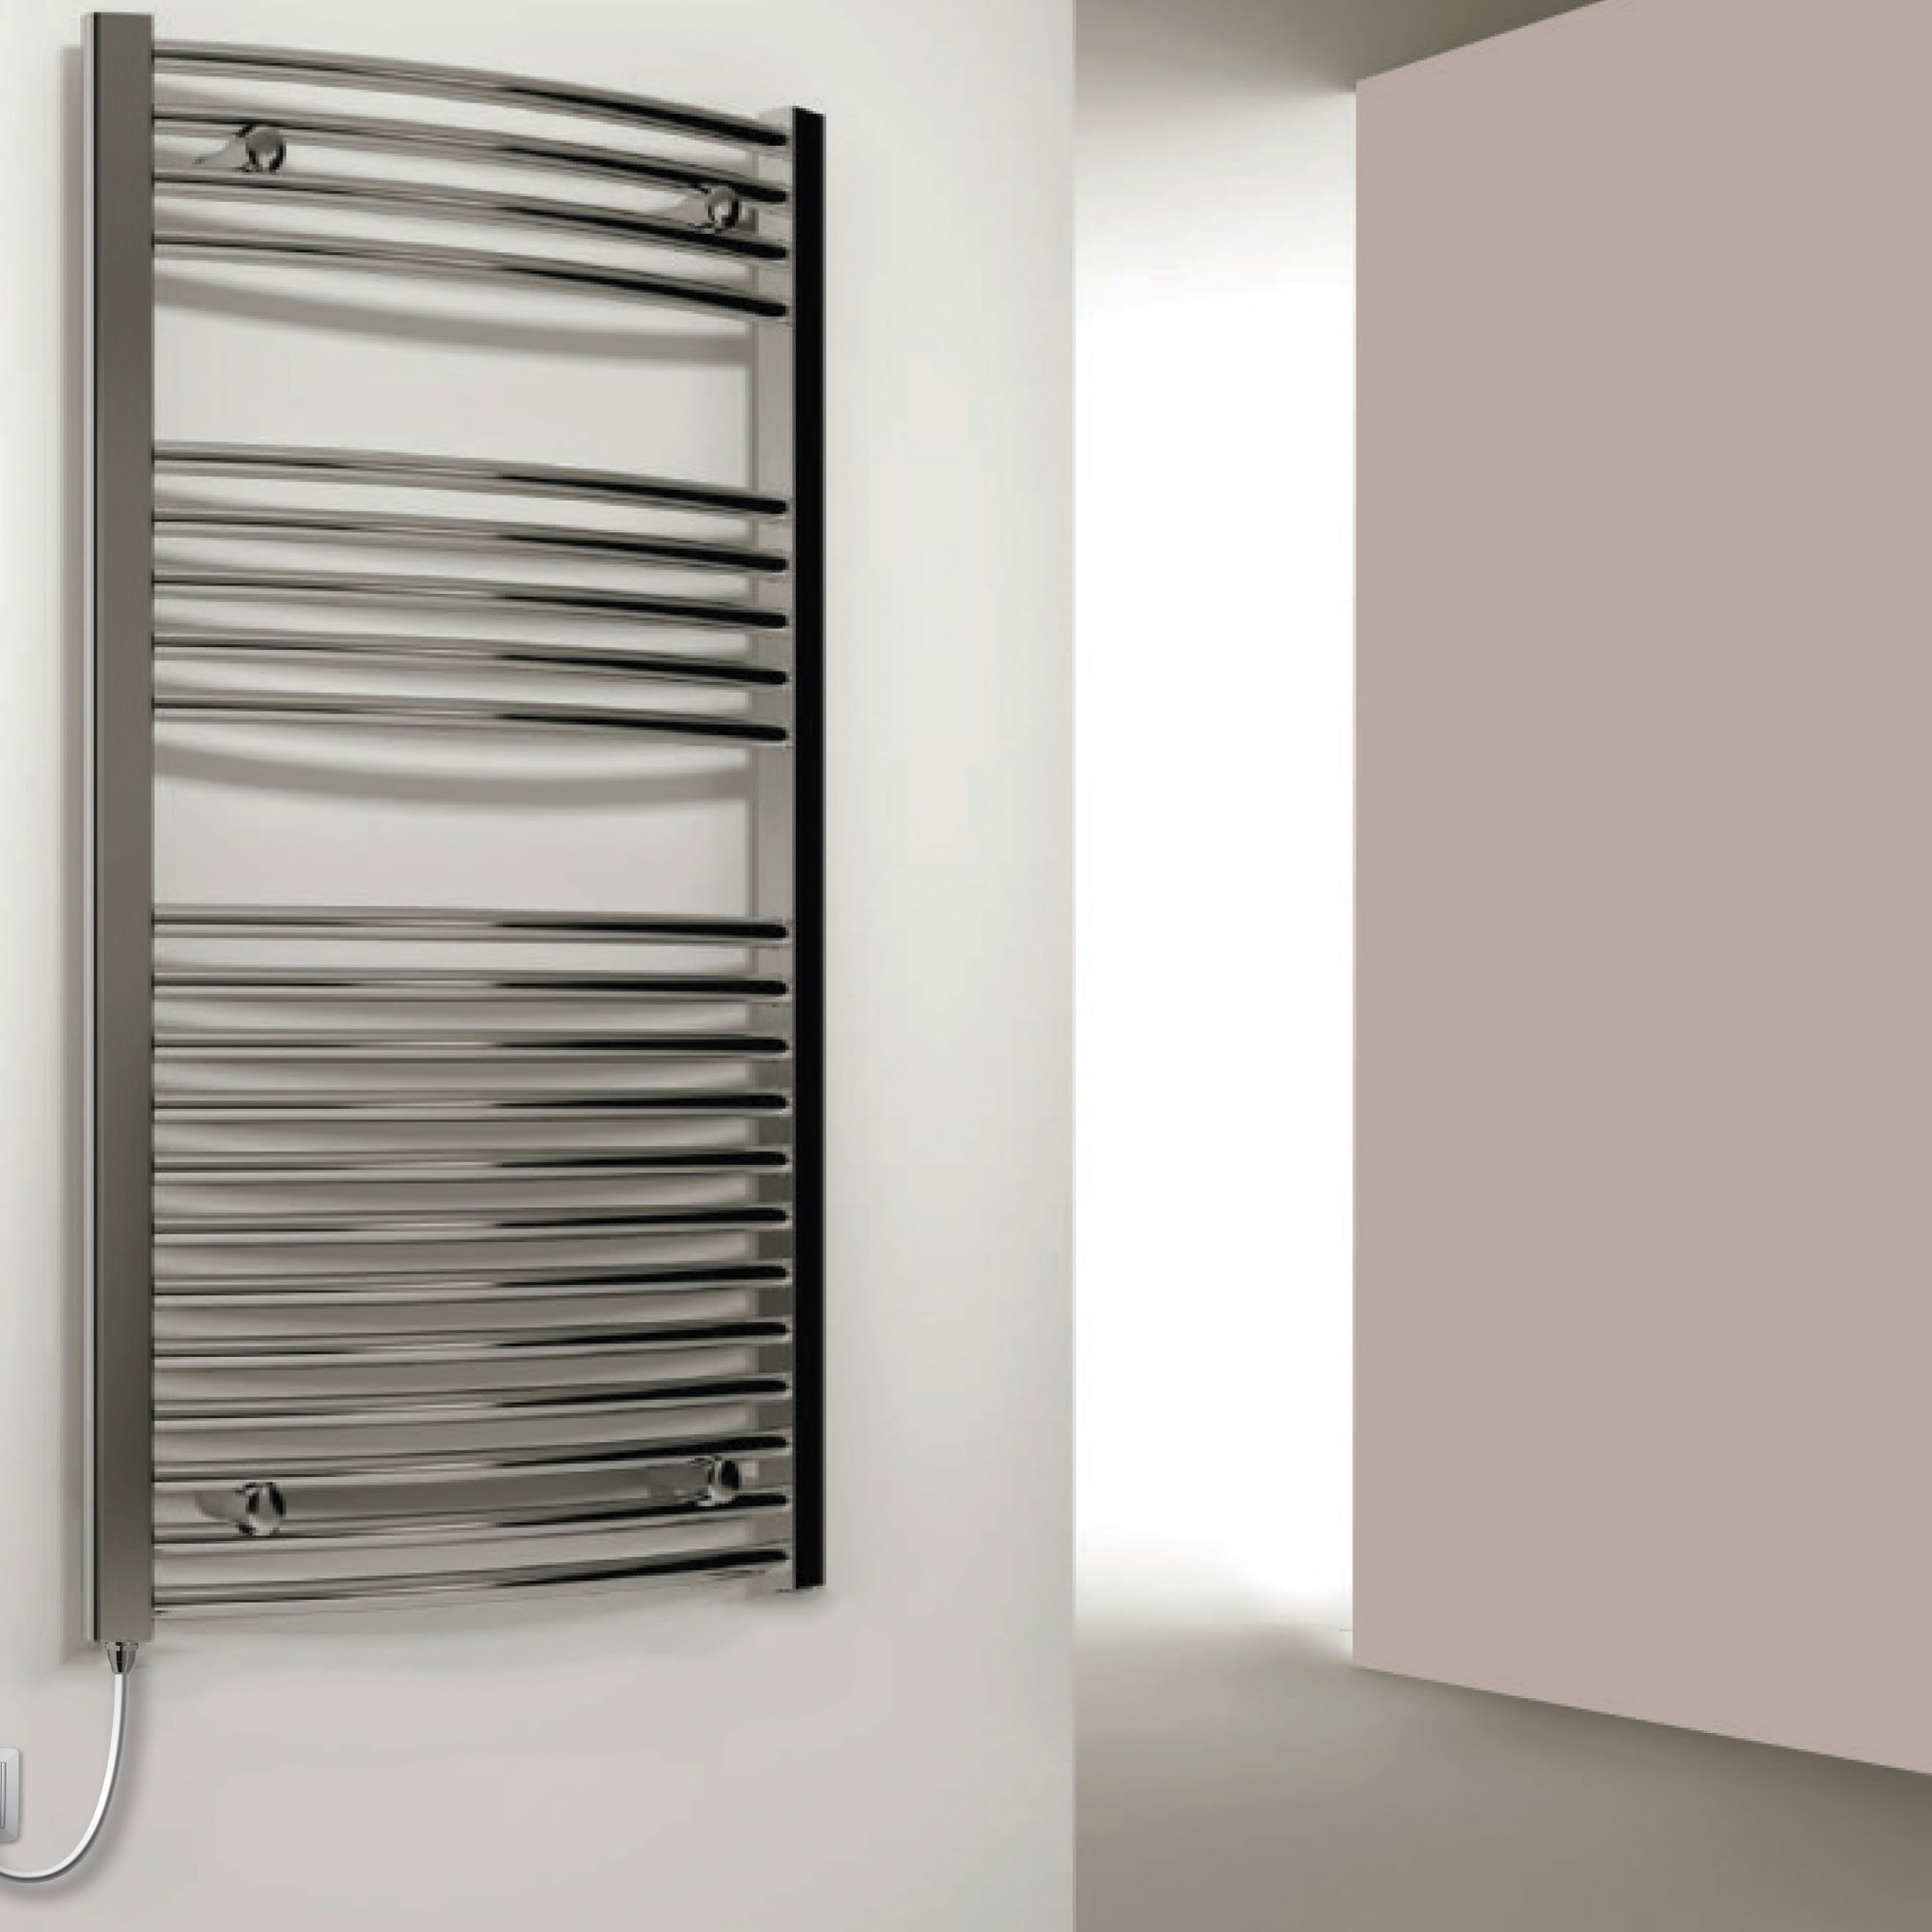 Reina Capo Curved Electric Heated Towel Rail 1200mm H x 400mm W Chrome